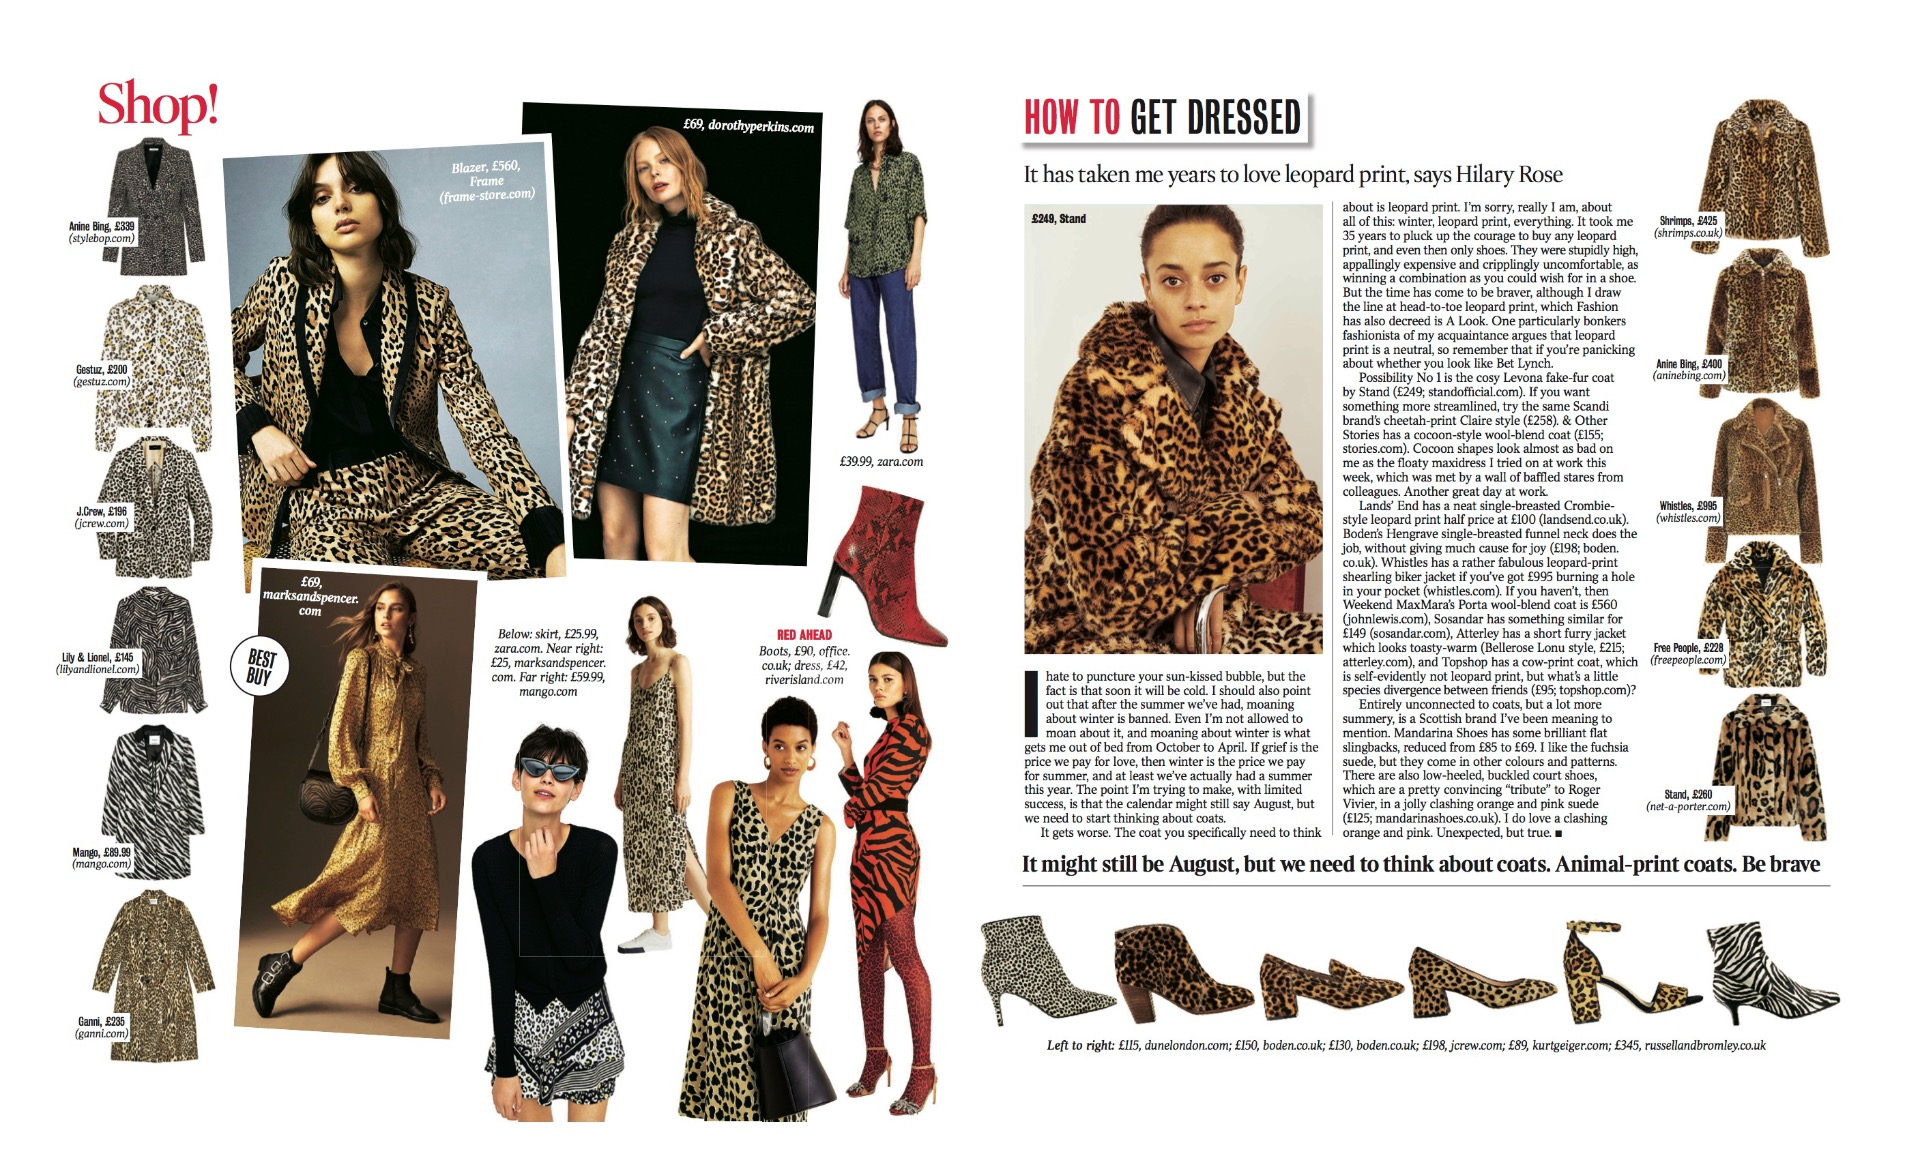 Leopard Print Coat featured in The Times